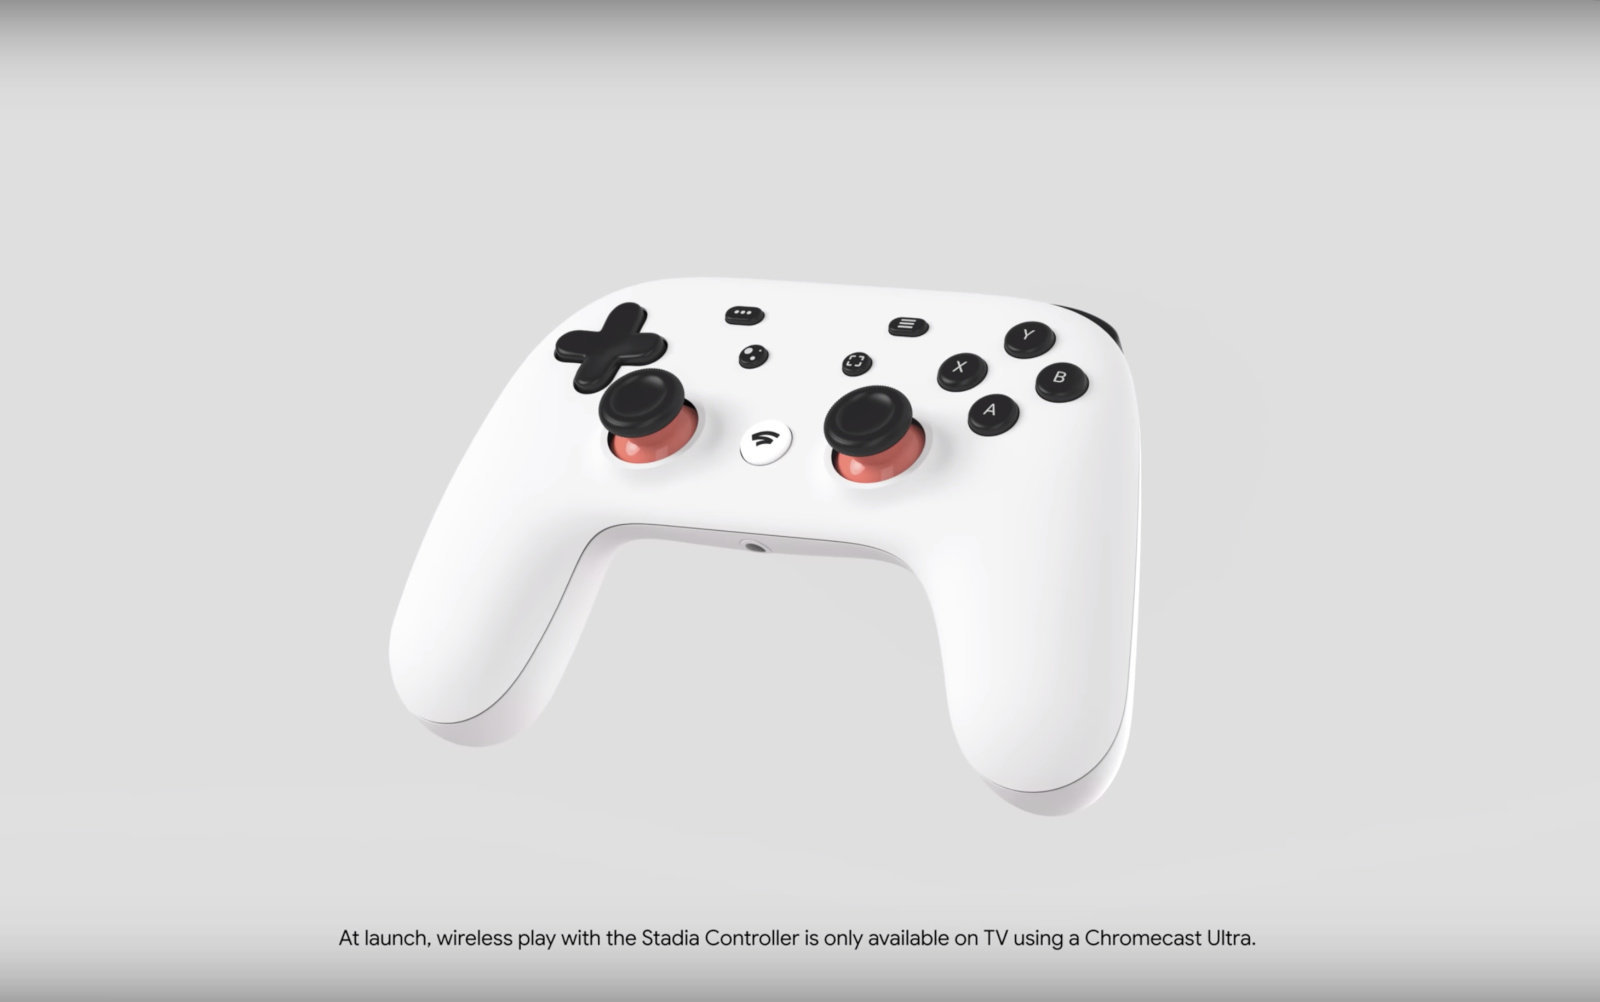 Google Stadia Controller: niente connessione wireless senza Chromecast thumbnail